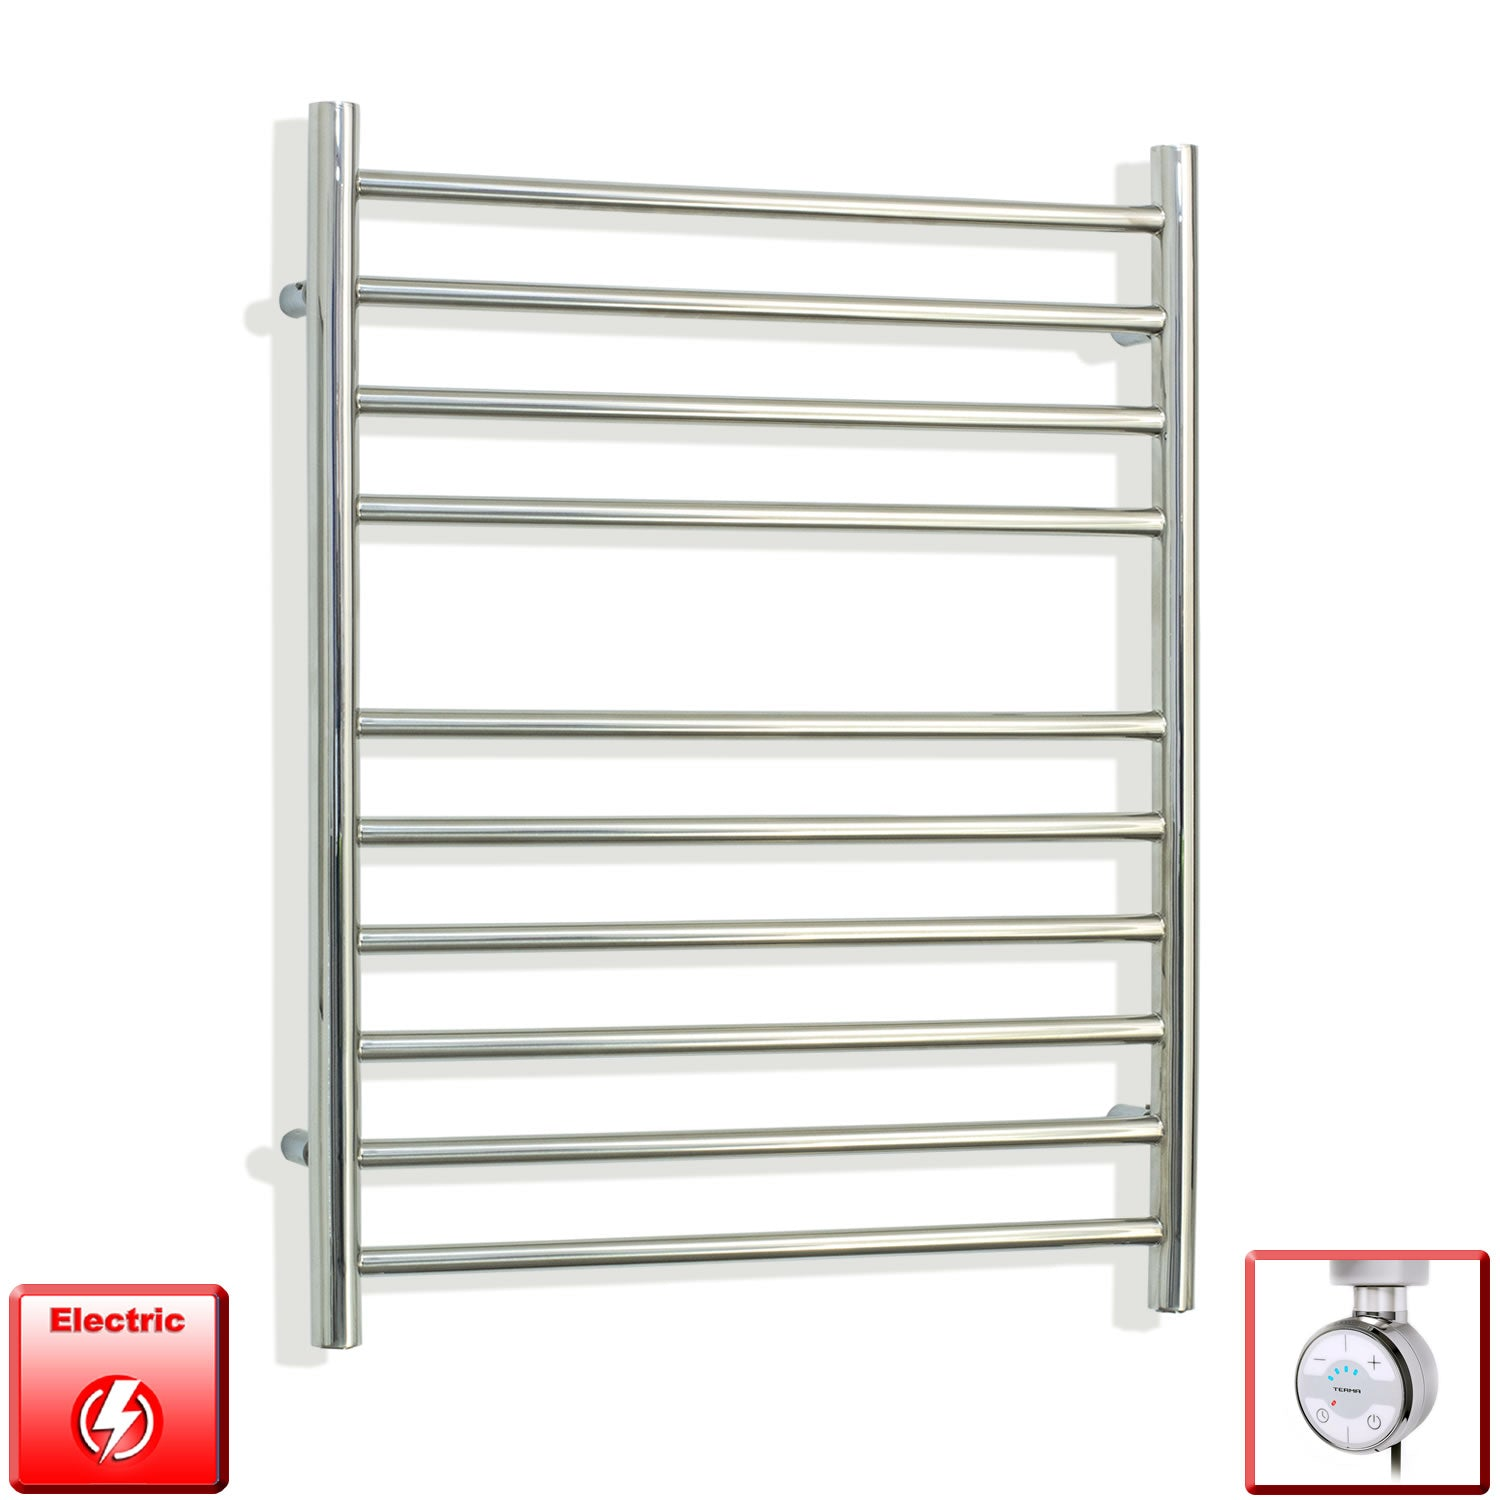 750 mm High 500 mm Wide Pre-Filled Electric Stainless Steel Heated Towel Rail Radiator Moa thermostatic heating element